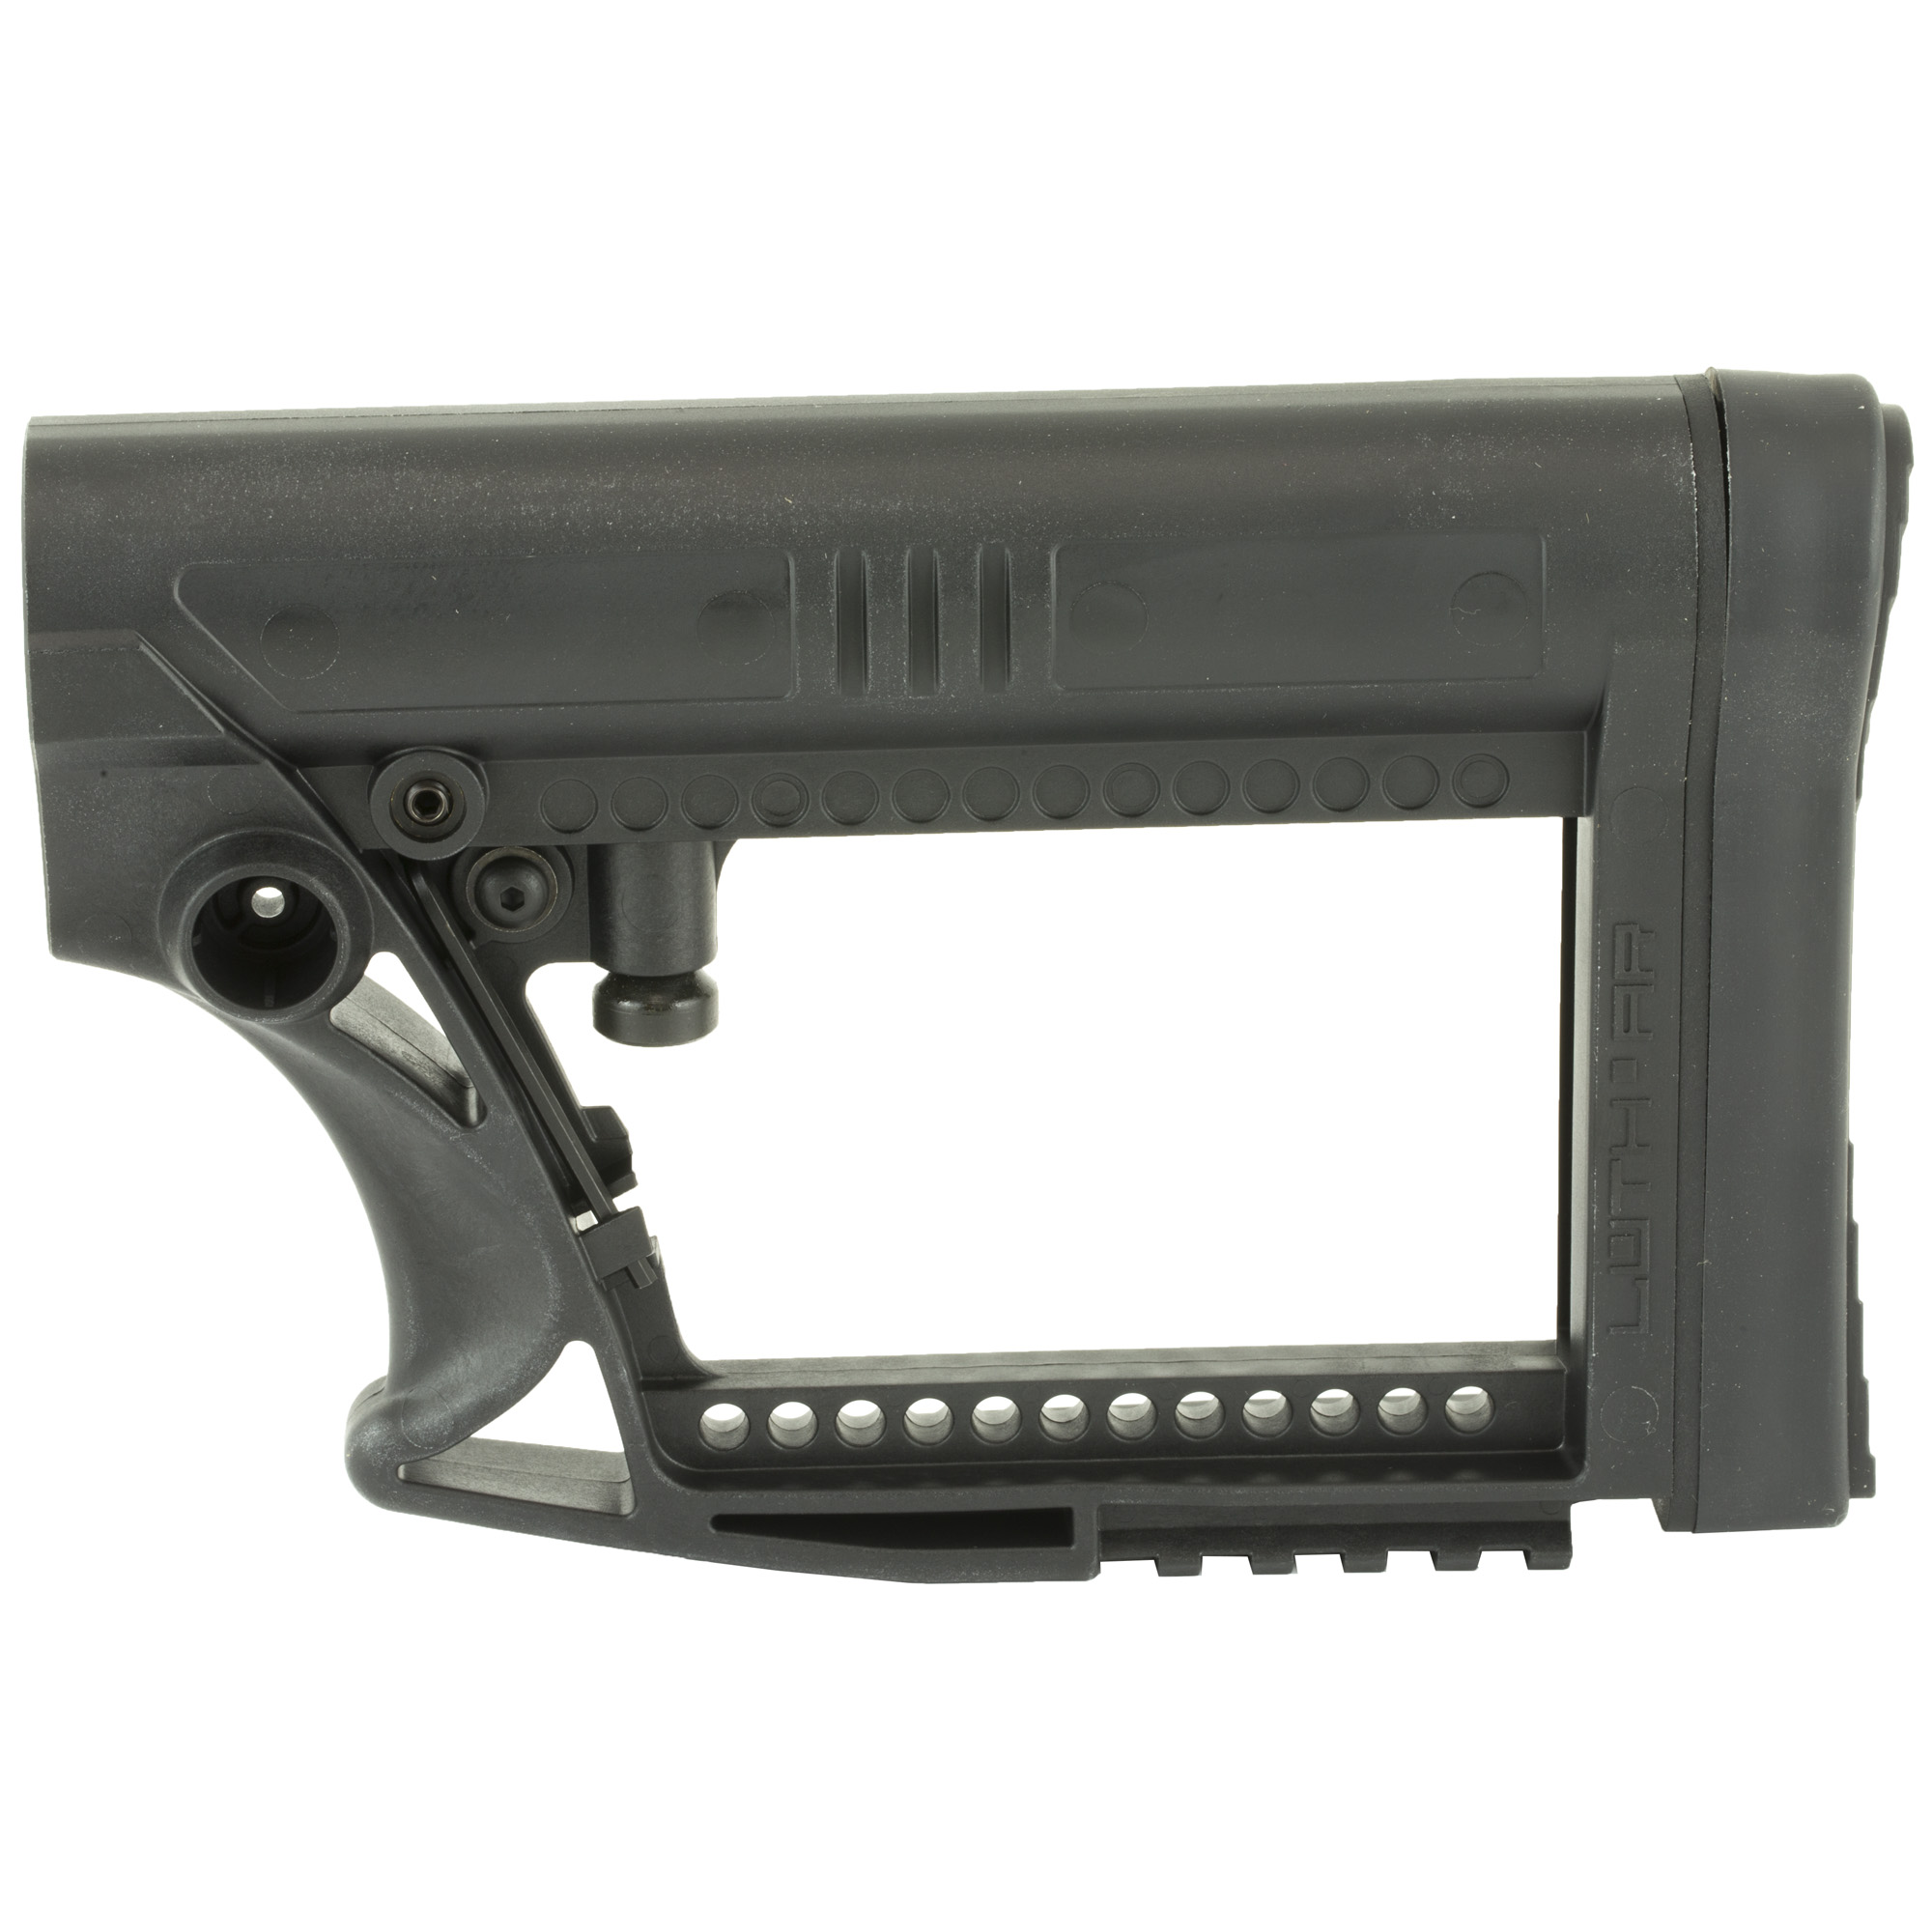 Luth-AR's MBA-4 Carbine Stock Assembly Fits AR-15 & AR-10 Commercial and Mil-Spec Buffer Tubes. It fits all .223 and most .308 AR carbine style rifles. It is a lightweight stock made with super strong glass filled nylon and is easy to replace and quick to install. Features a picatinny rail and a revolutionary anti-rattle set screw.